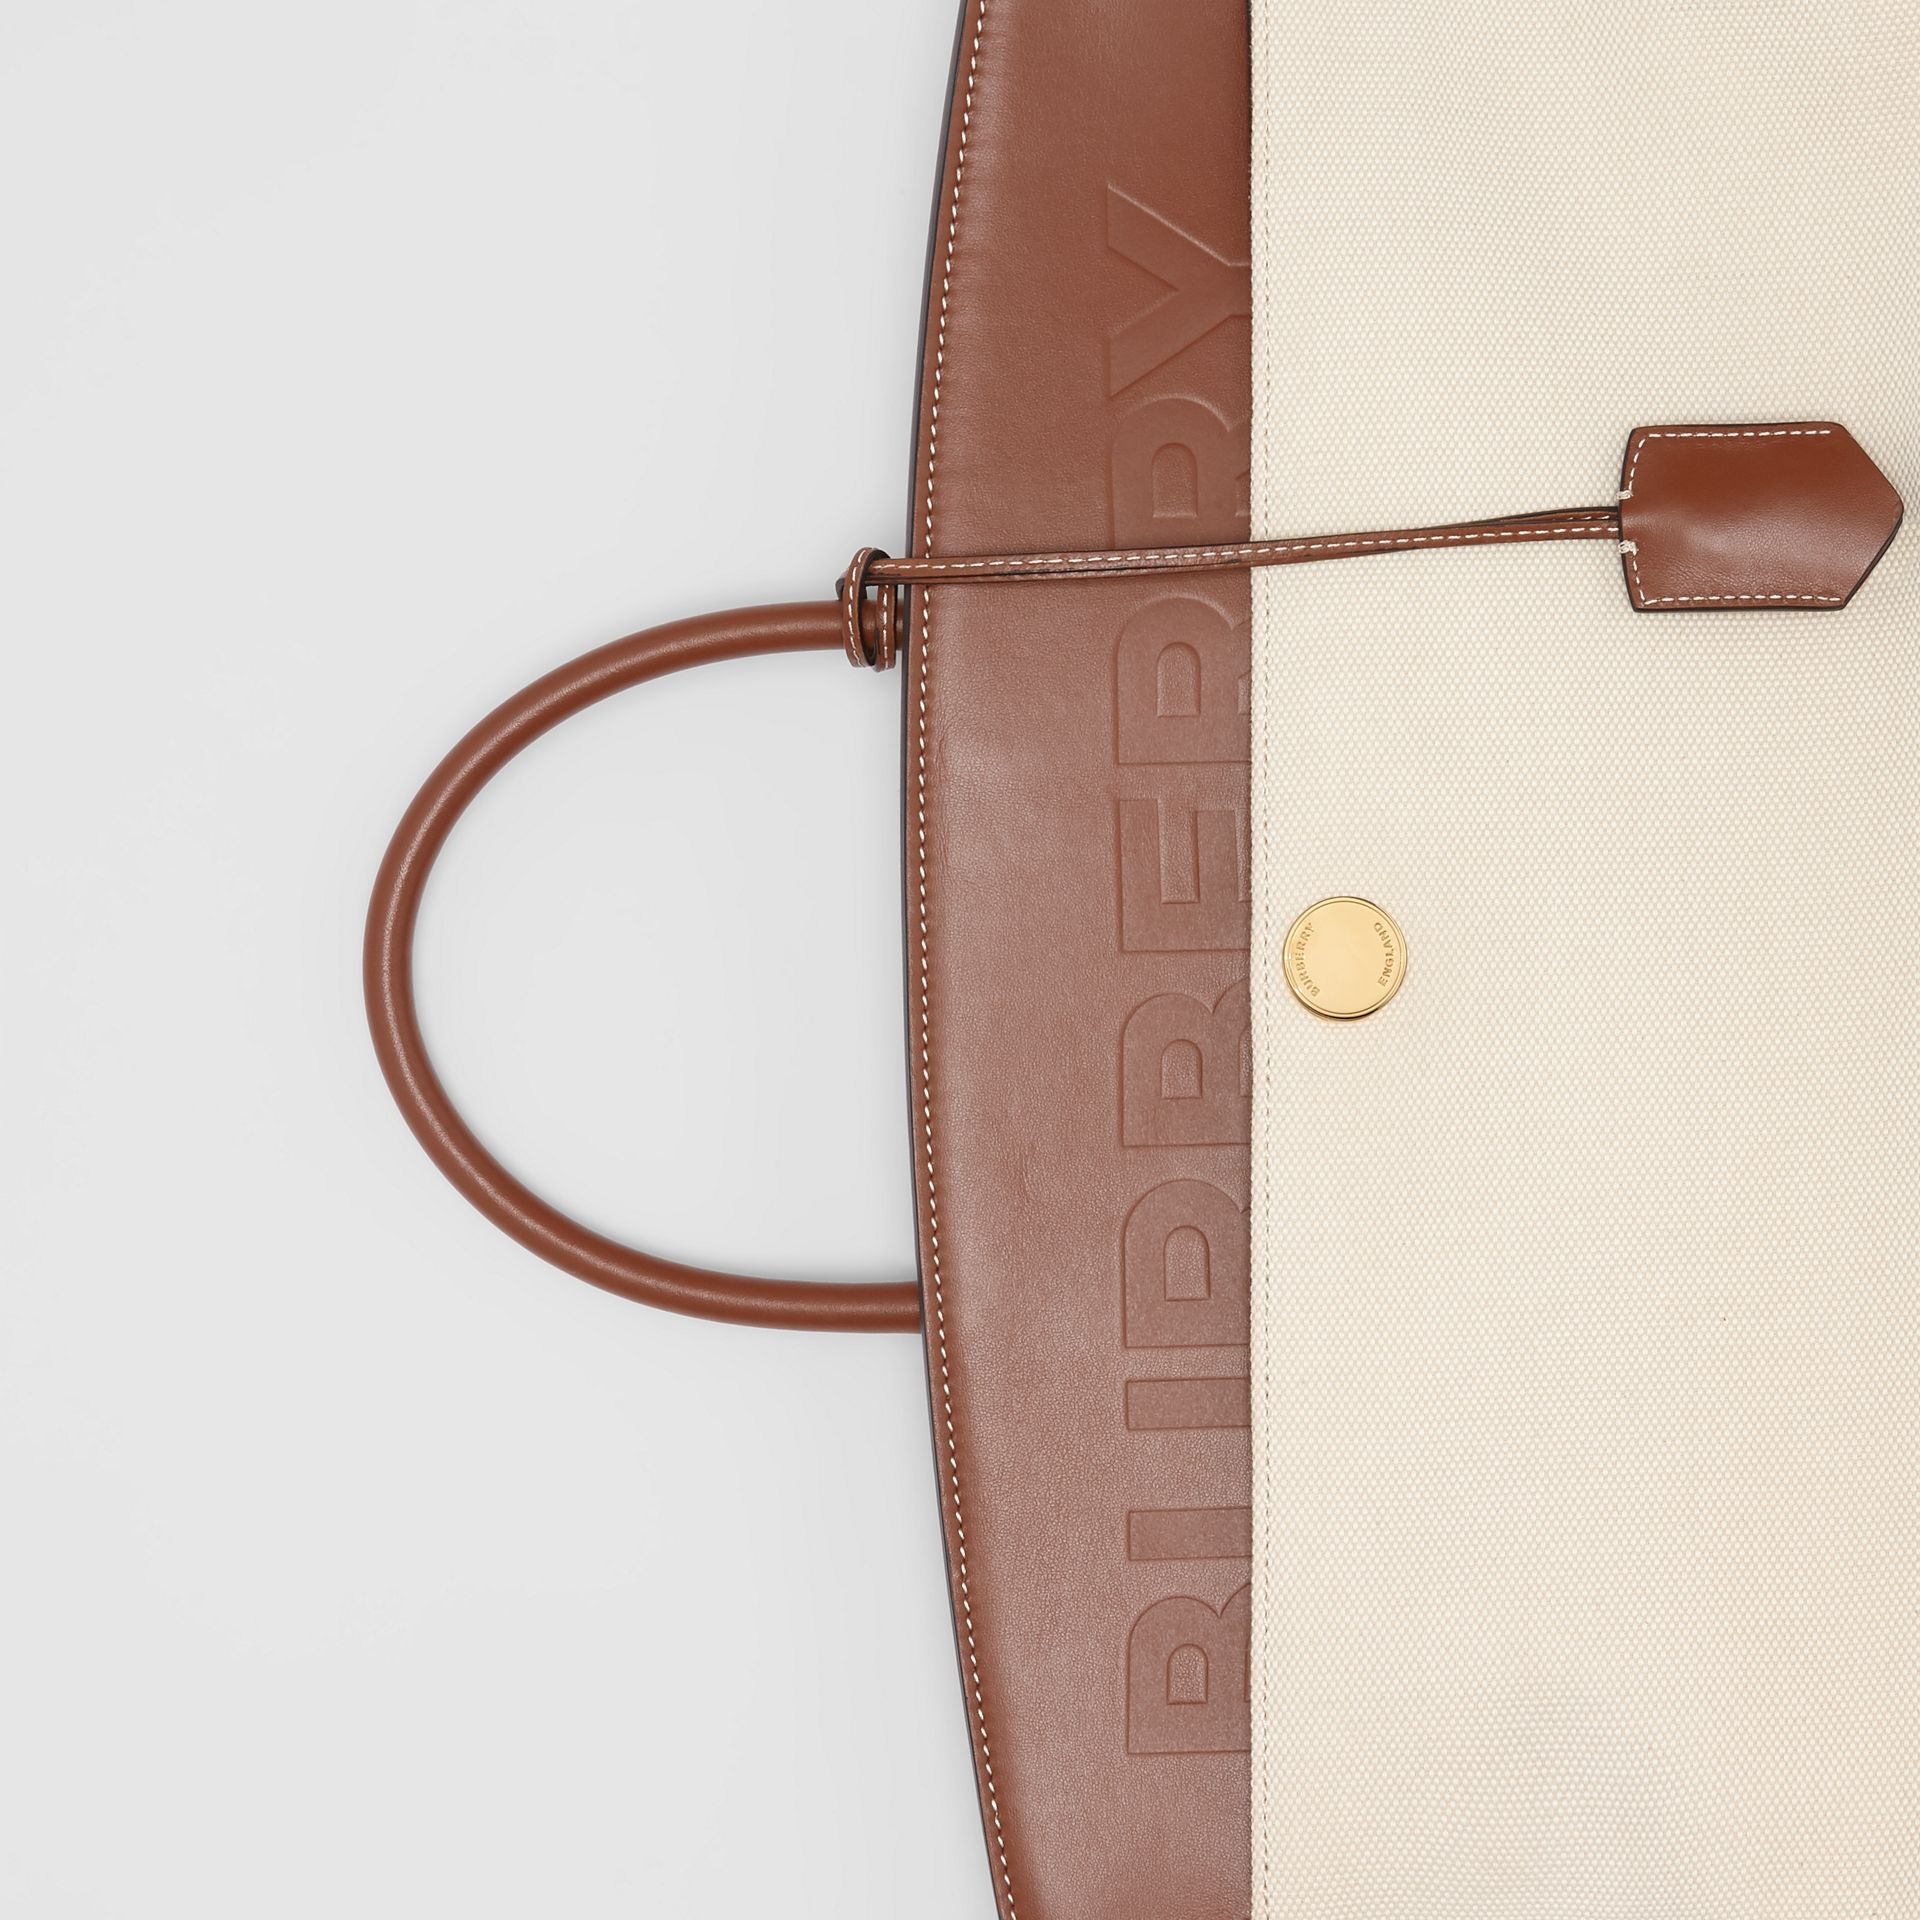 Cotton Canvas and Leather Society Top Handle Bag in Natural/malt Brown - Women | Burberry - gallery image 1